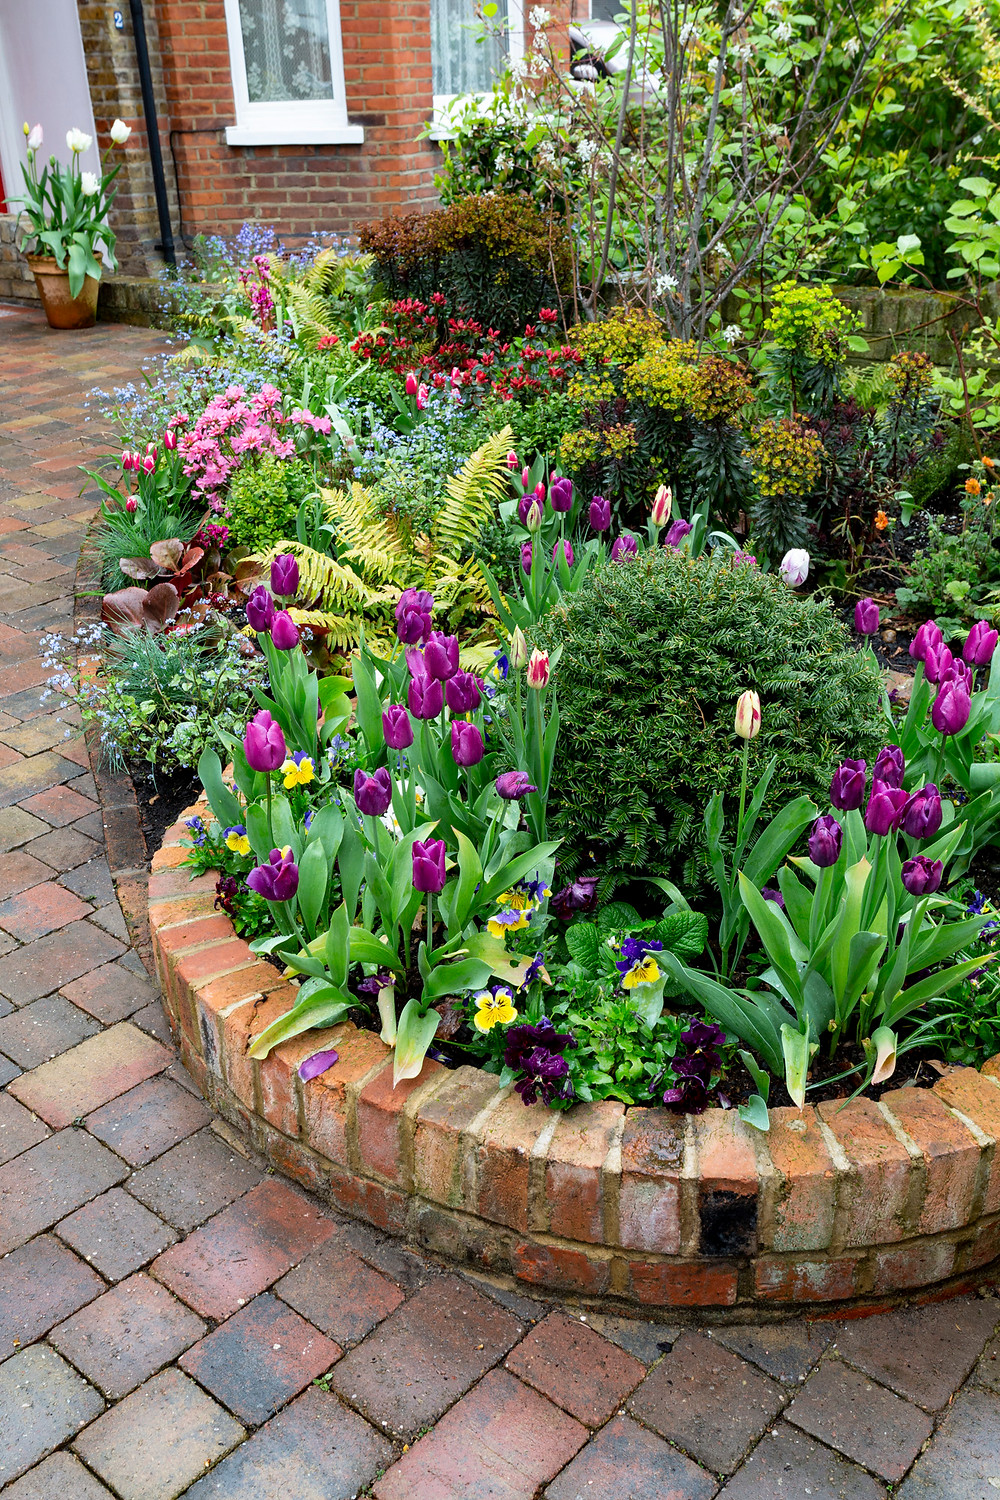 Circular brick flower beds